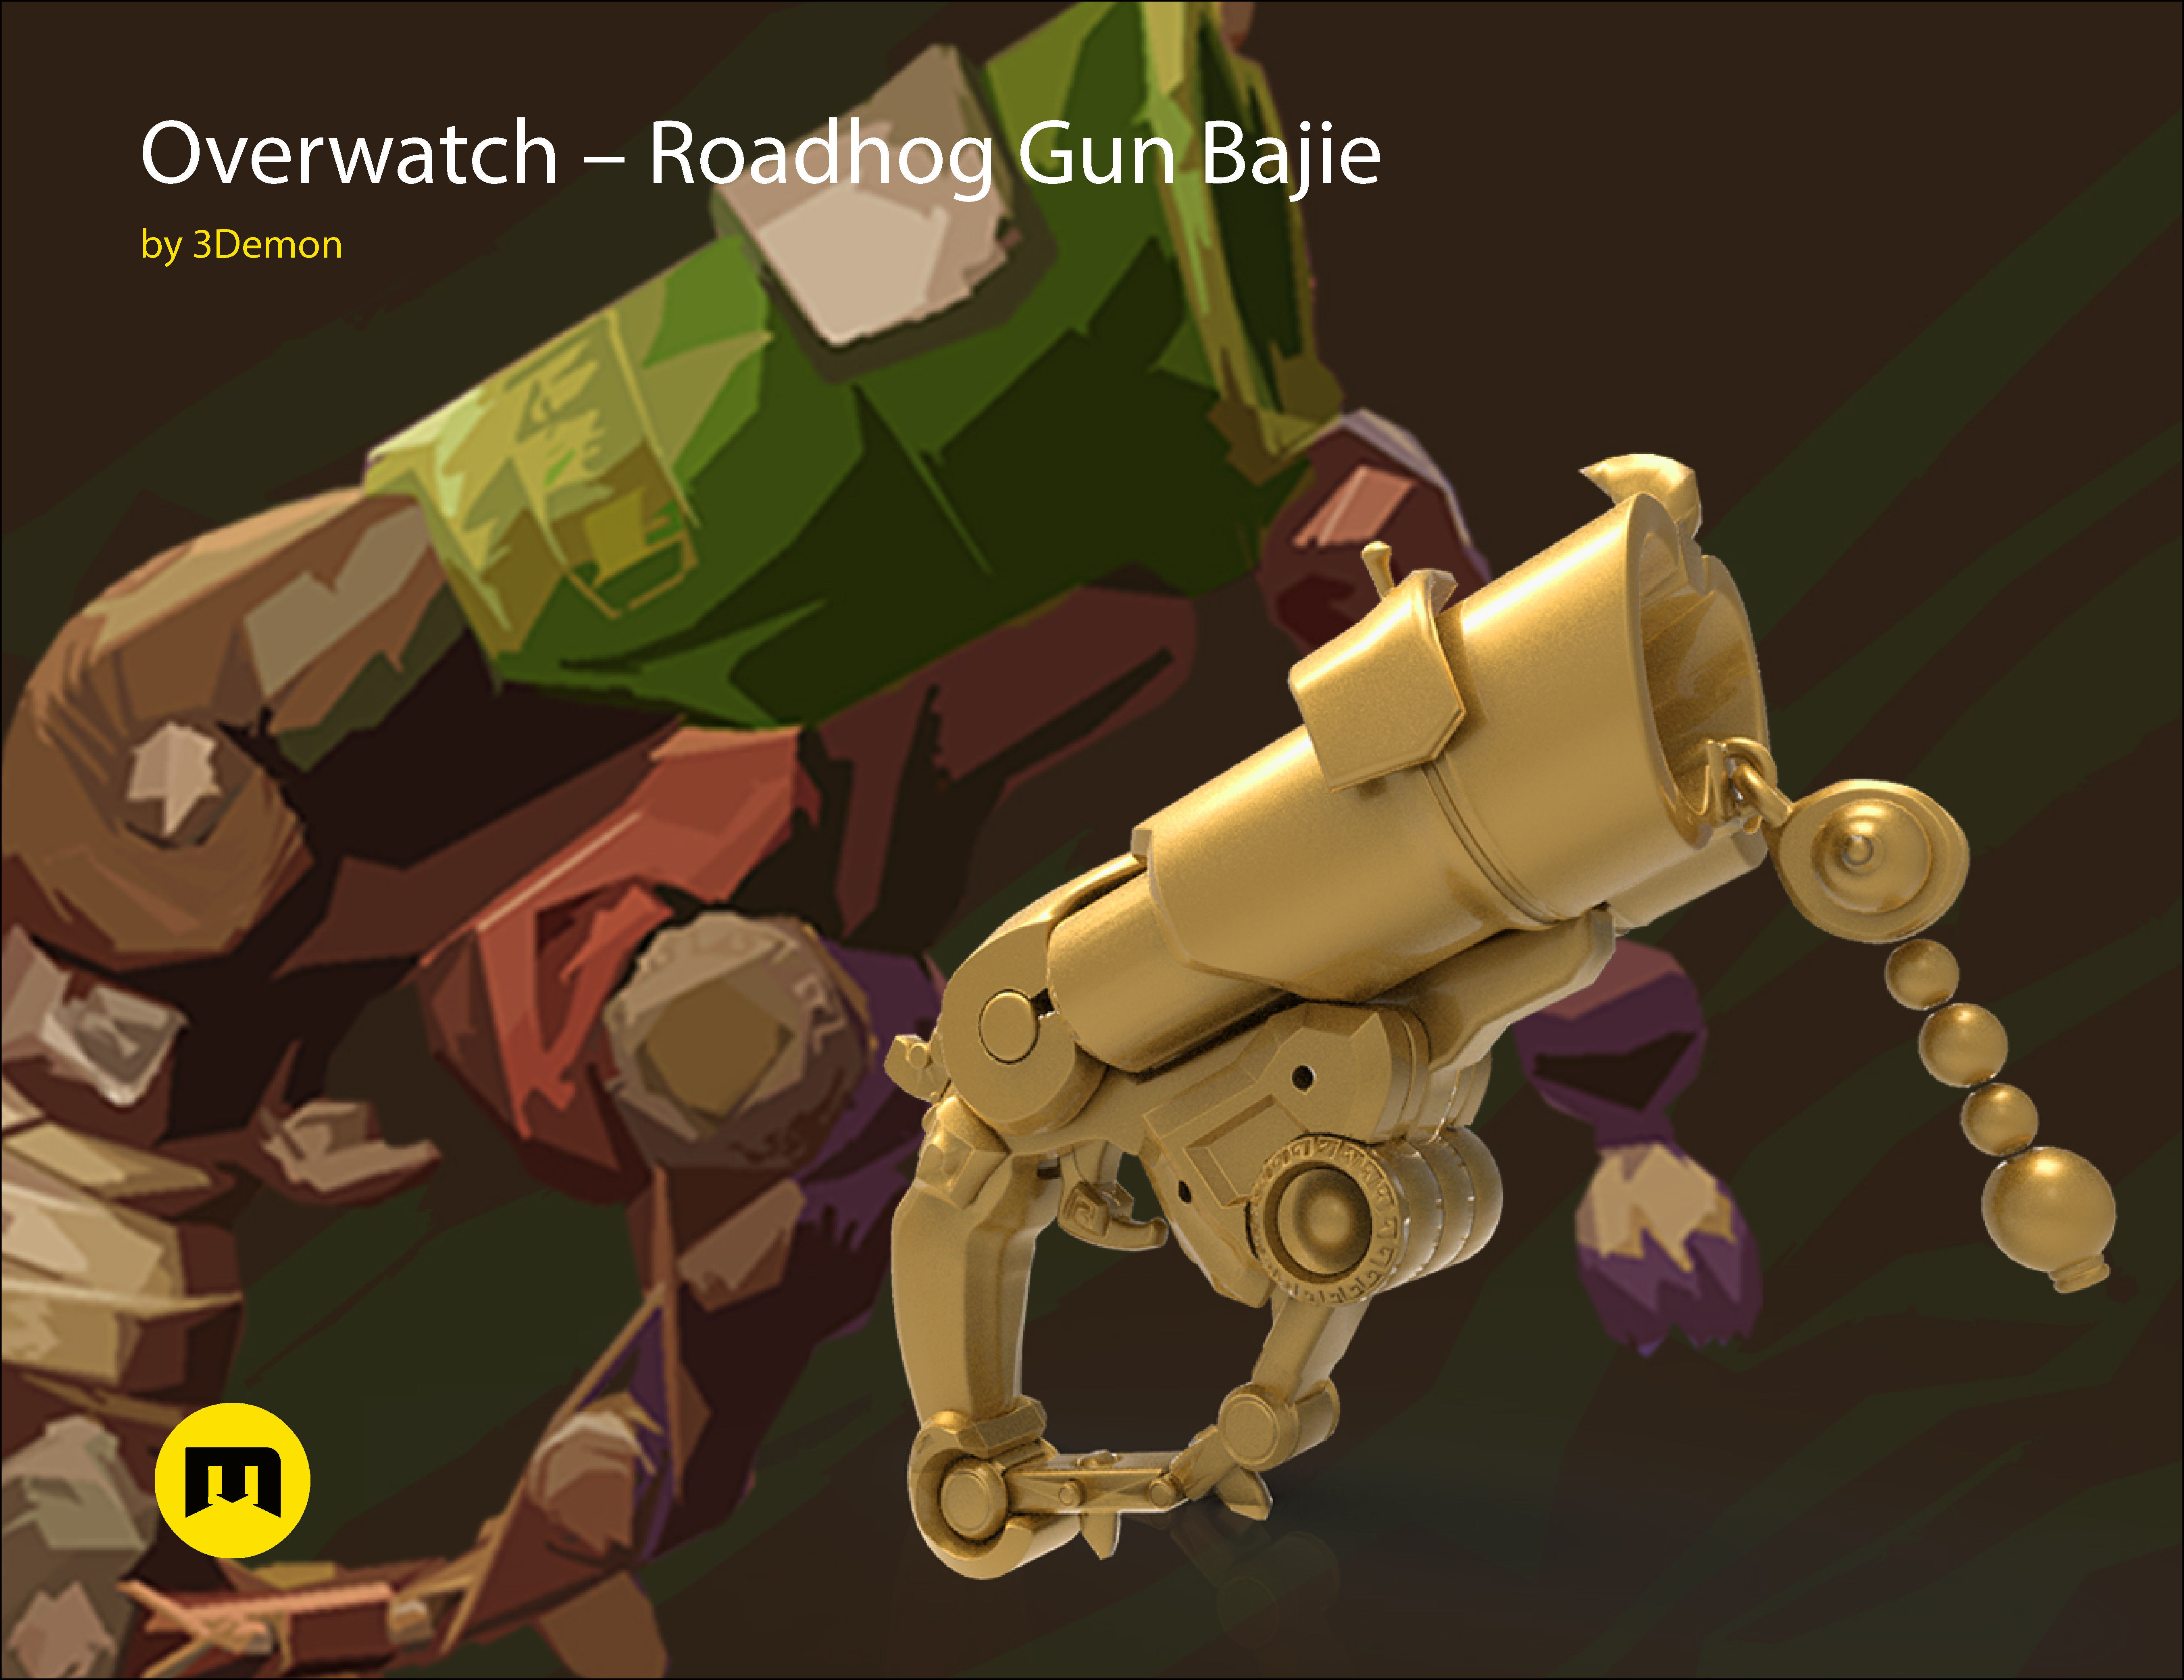 Overwatch Roadhog Gun Bajie